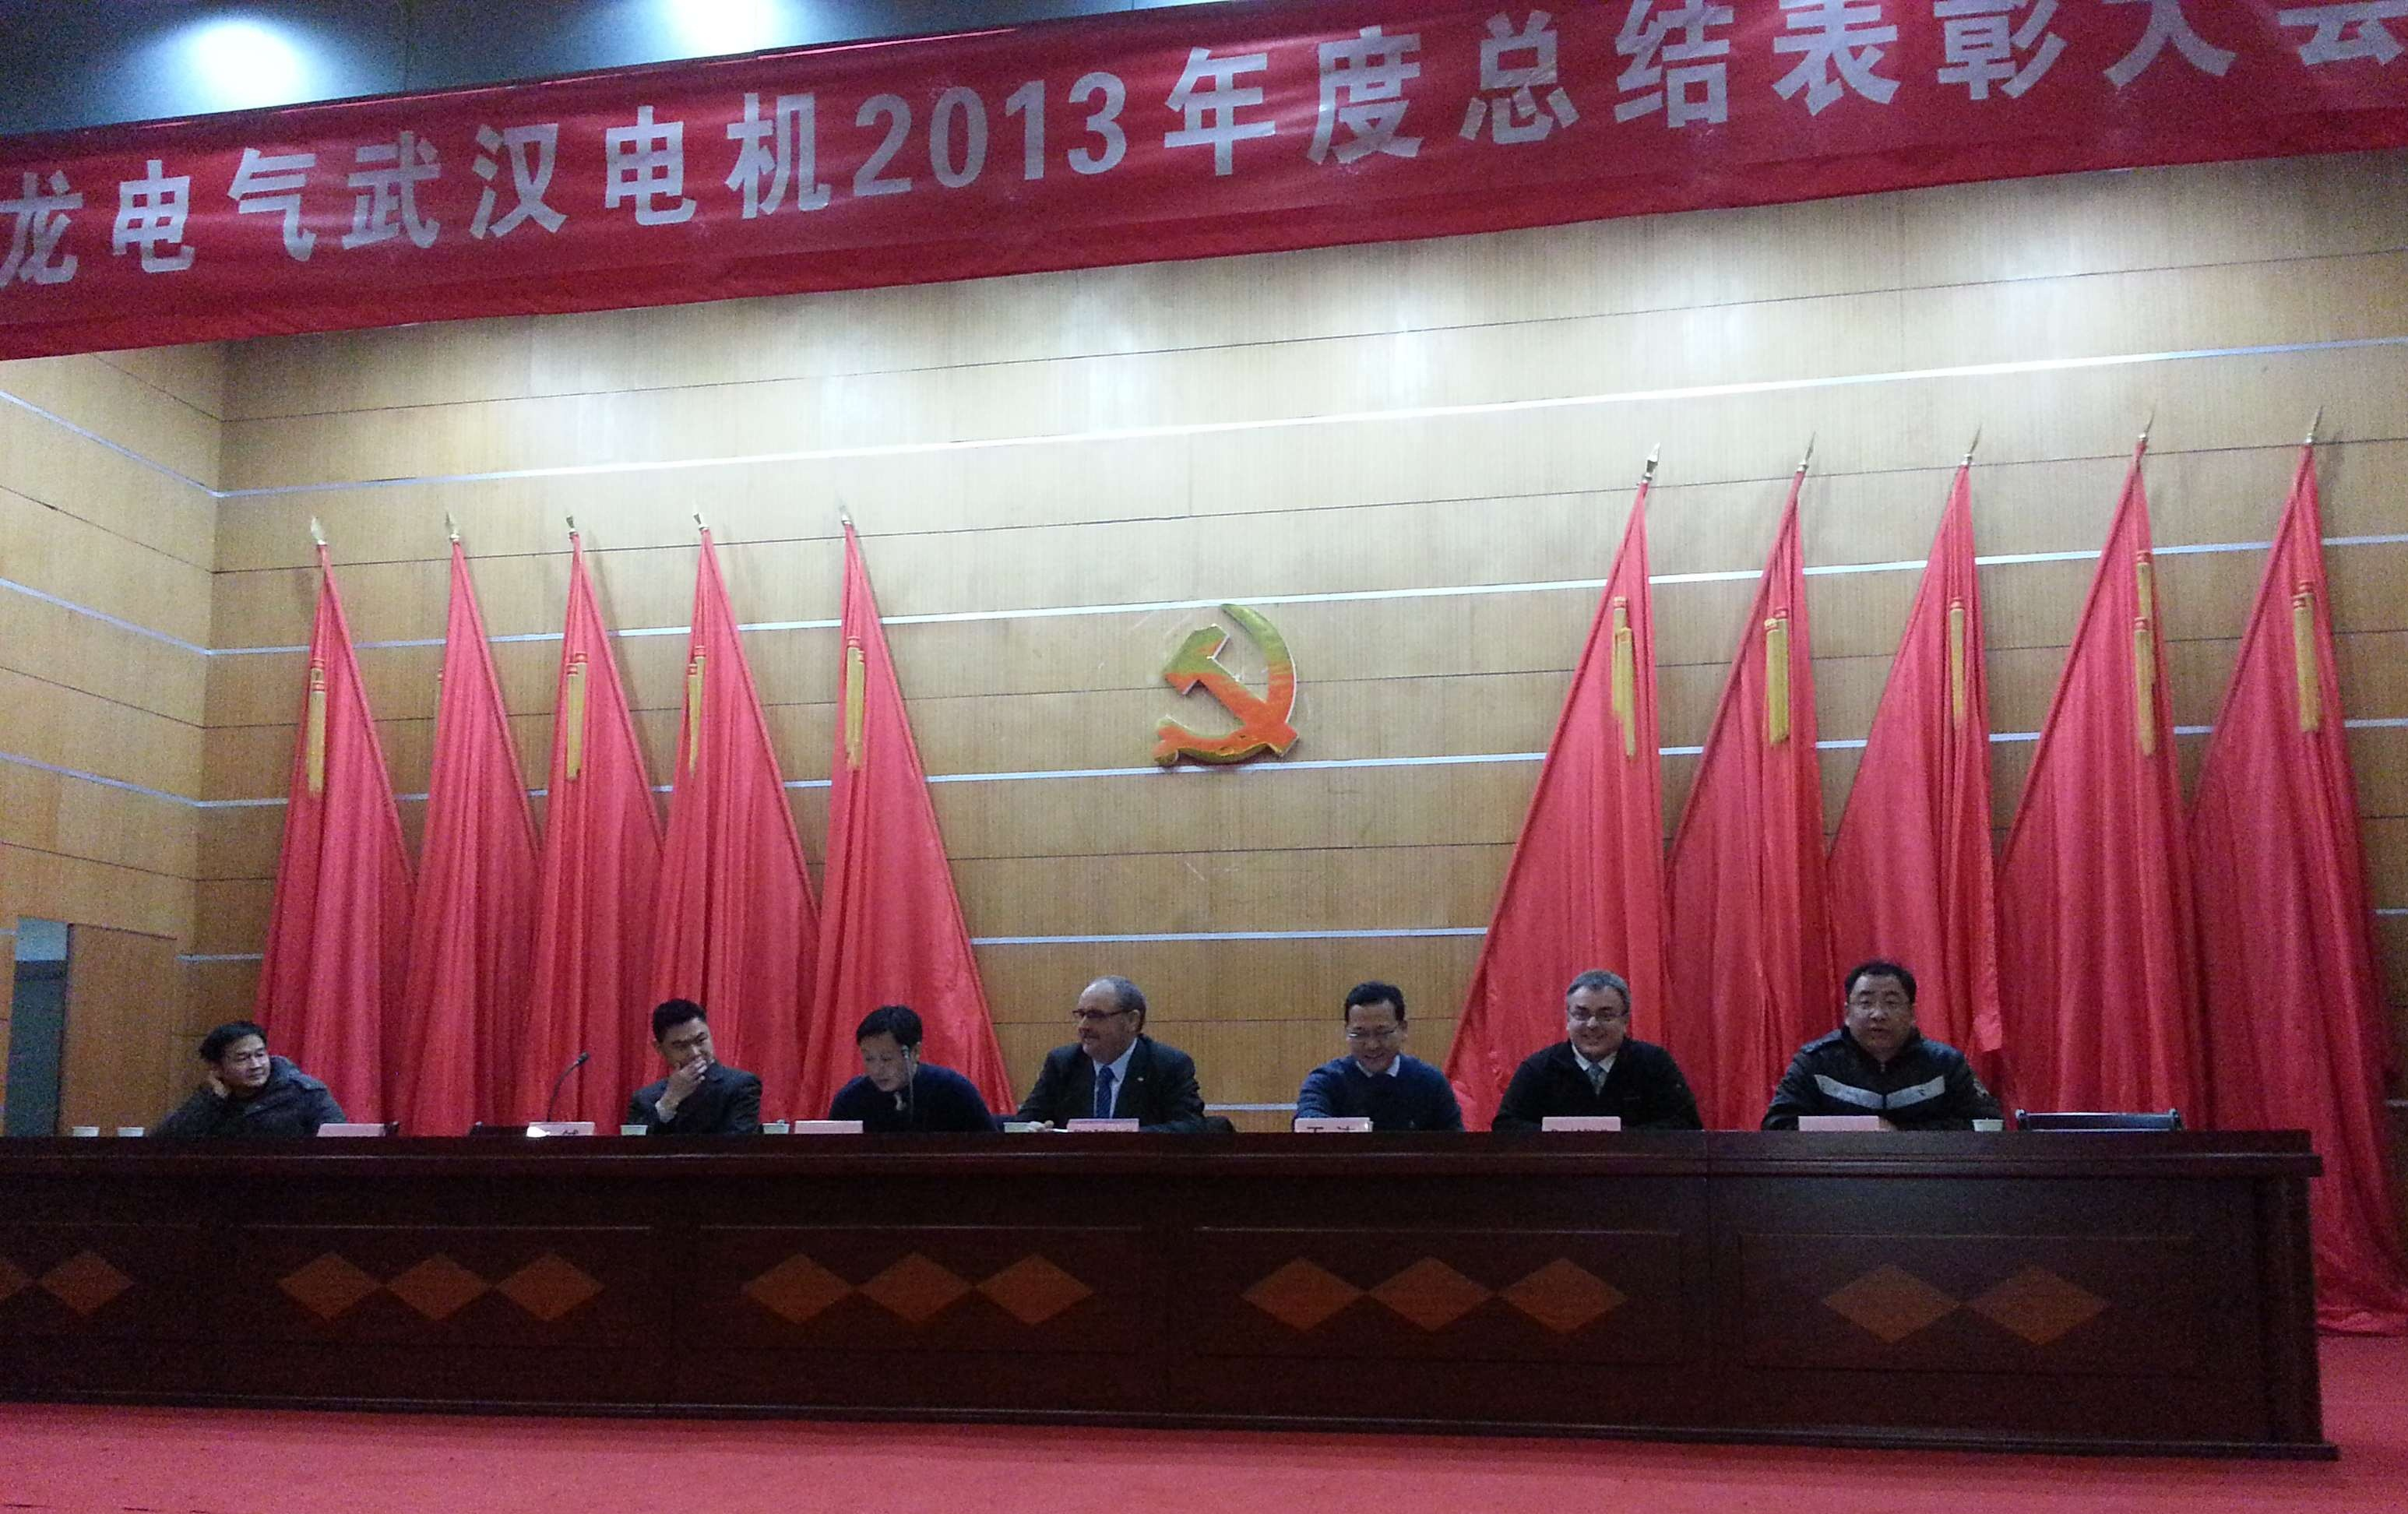 Steve Kolowiecki gives speech at Wuhan